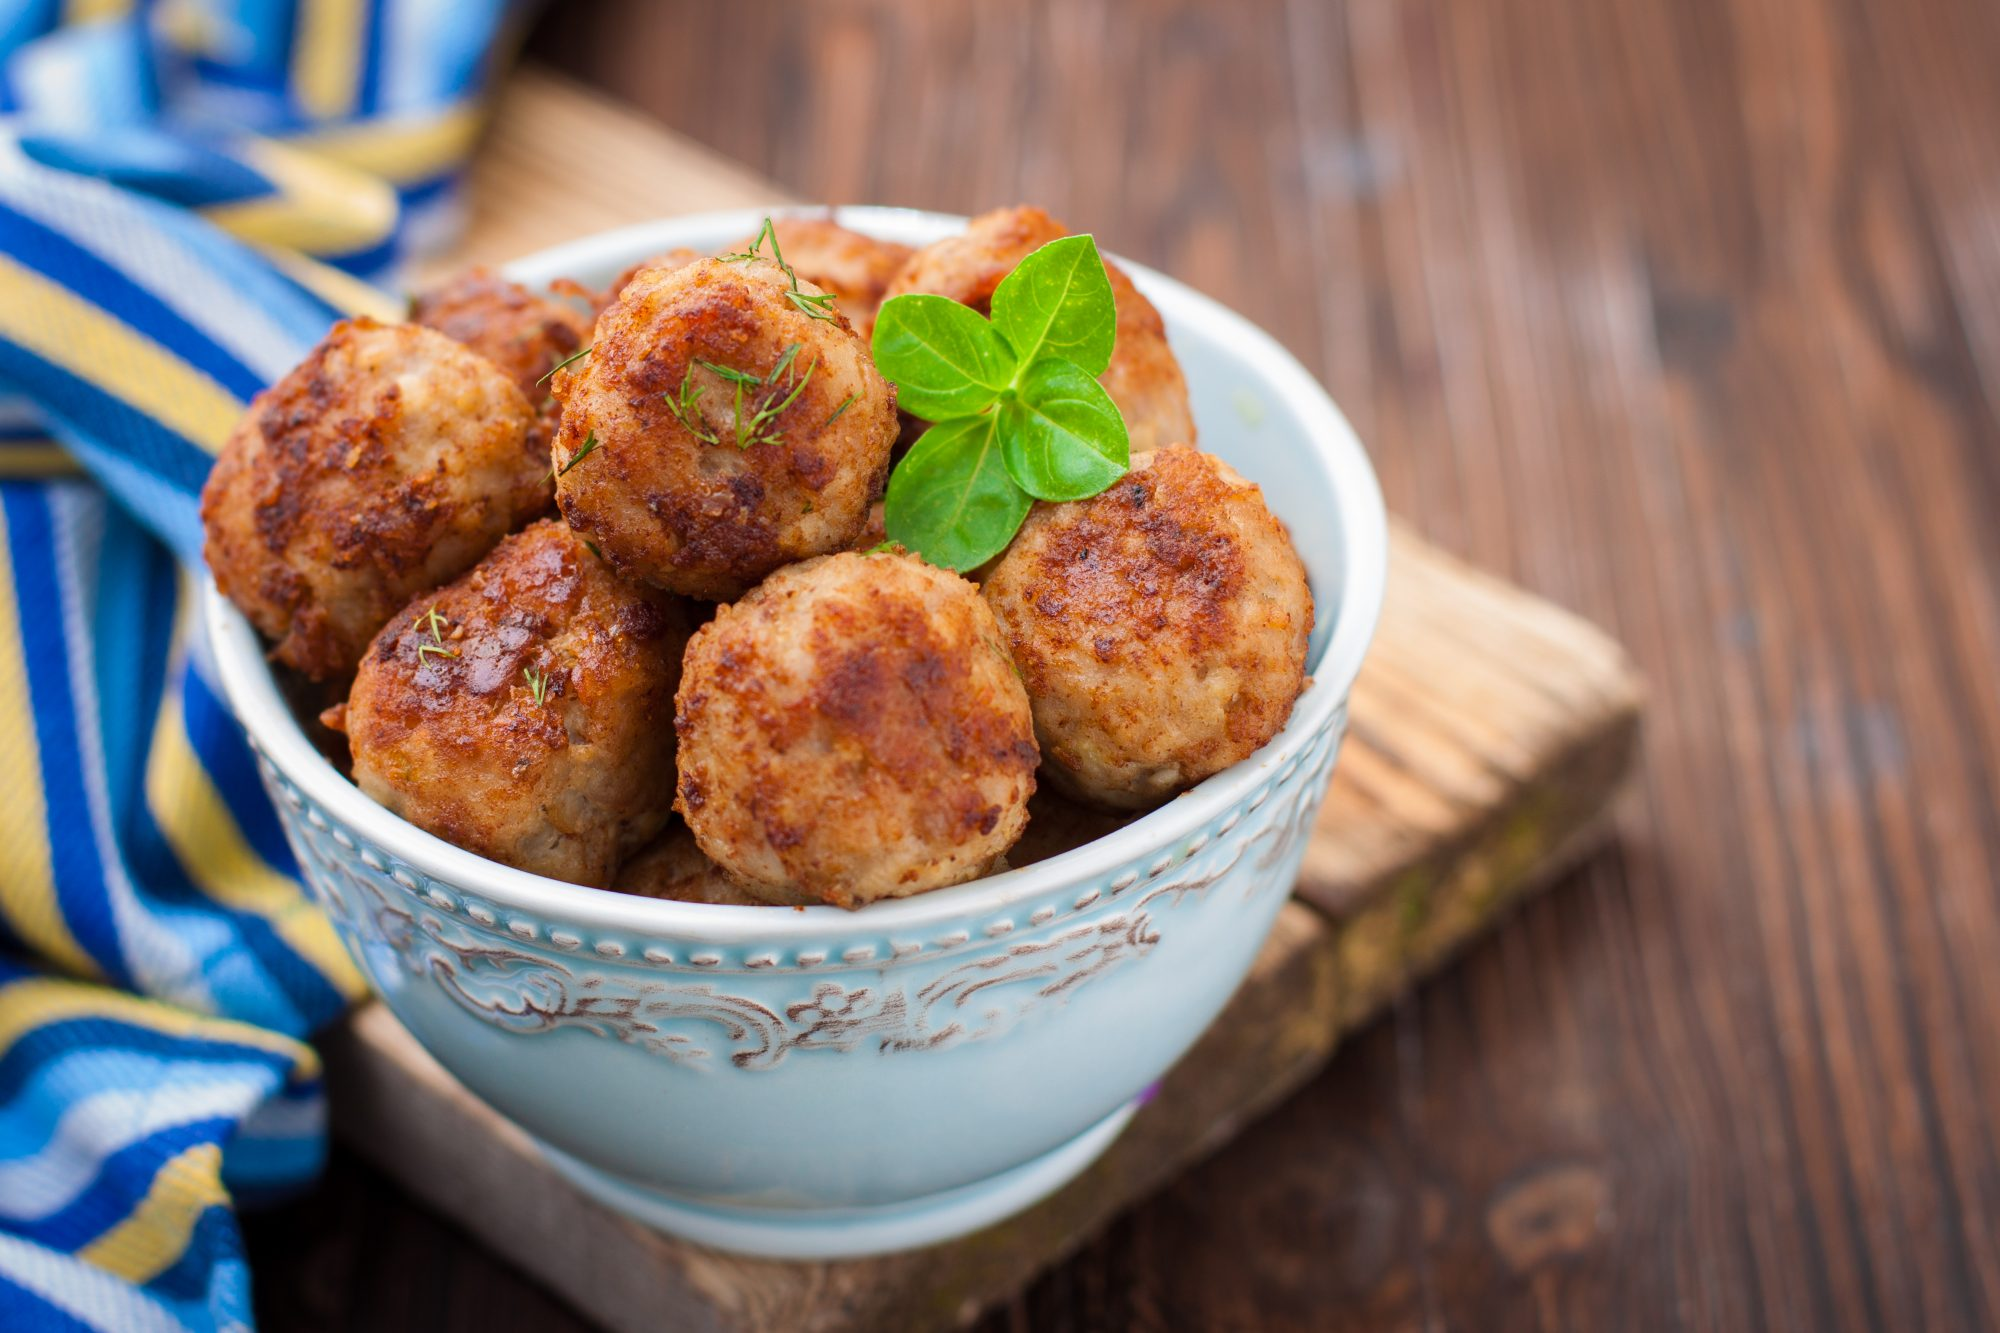 Meatball recipes for a healthier you